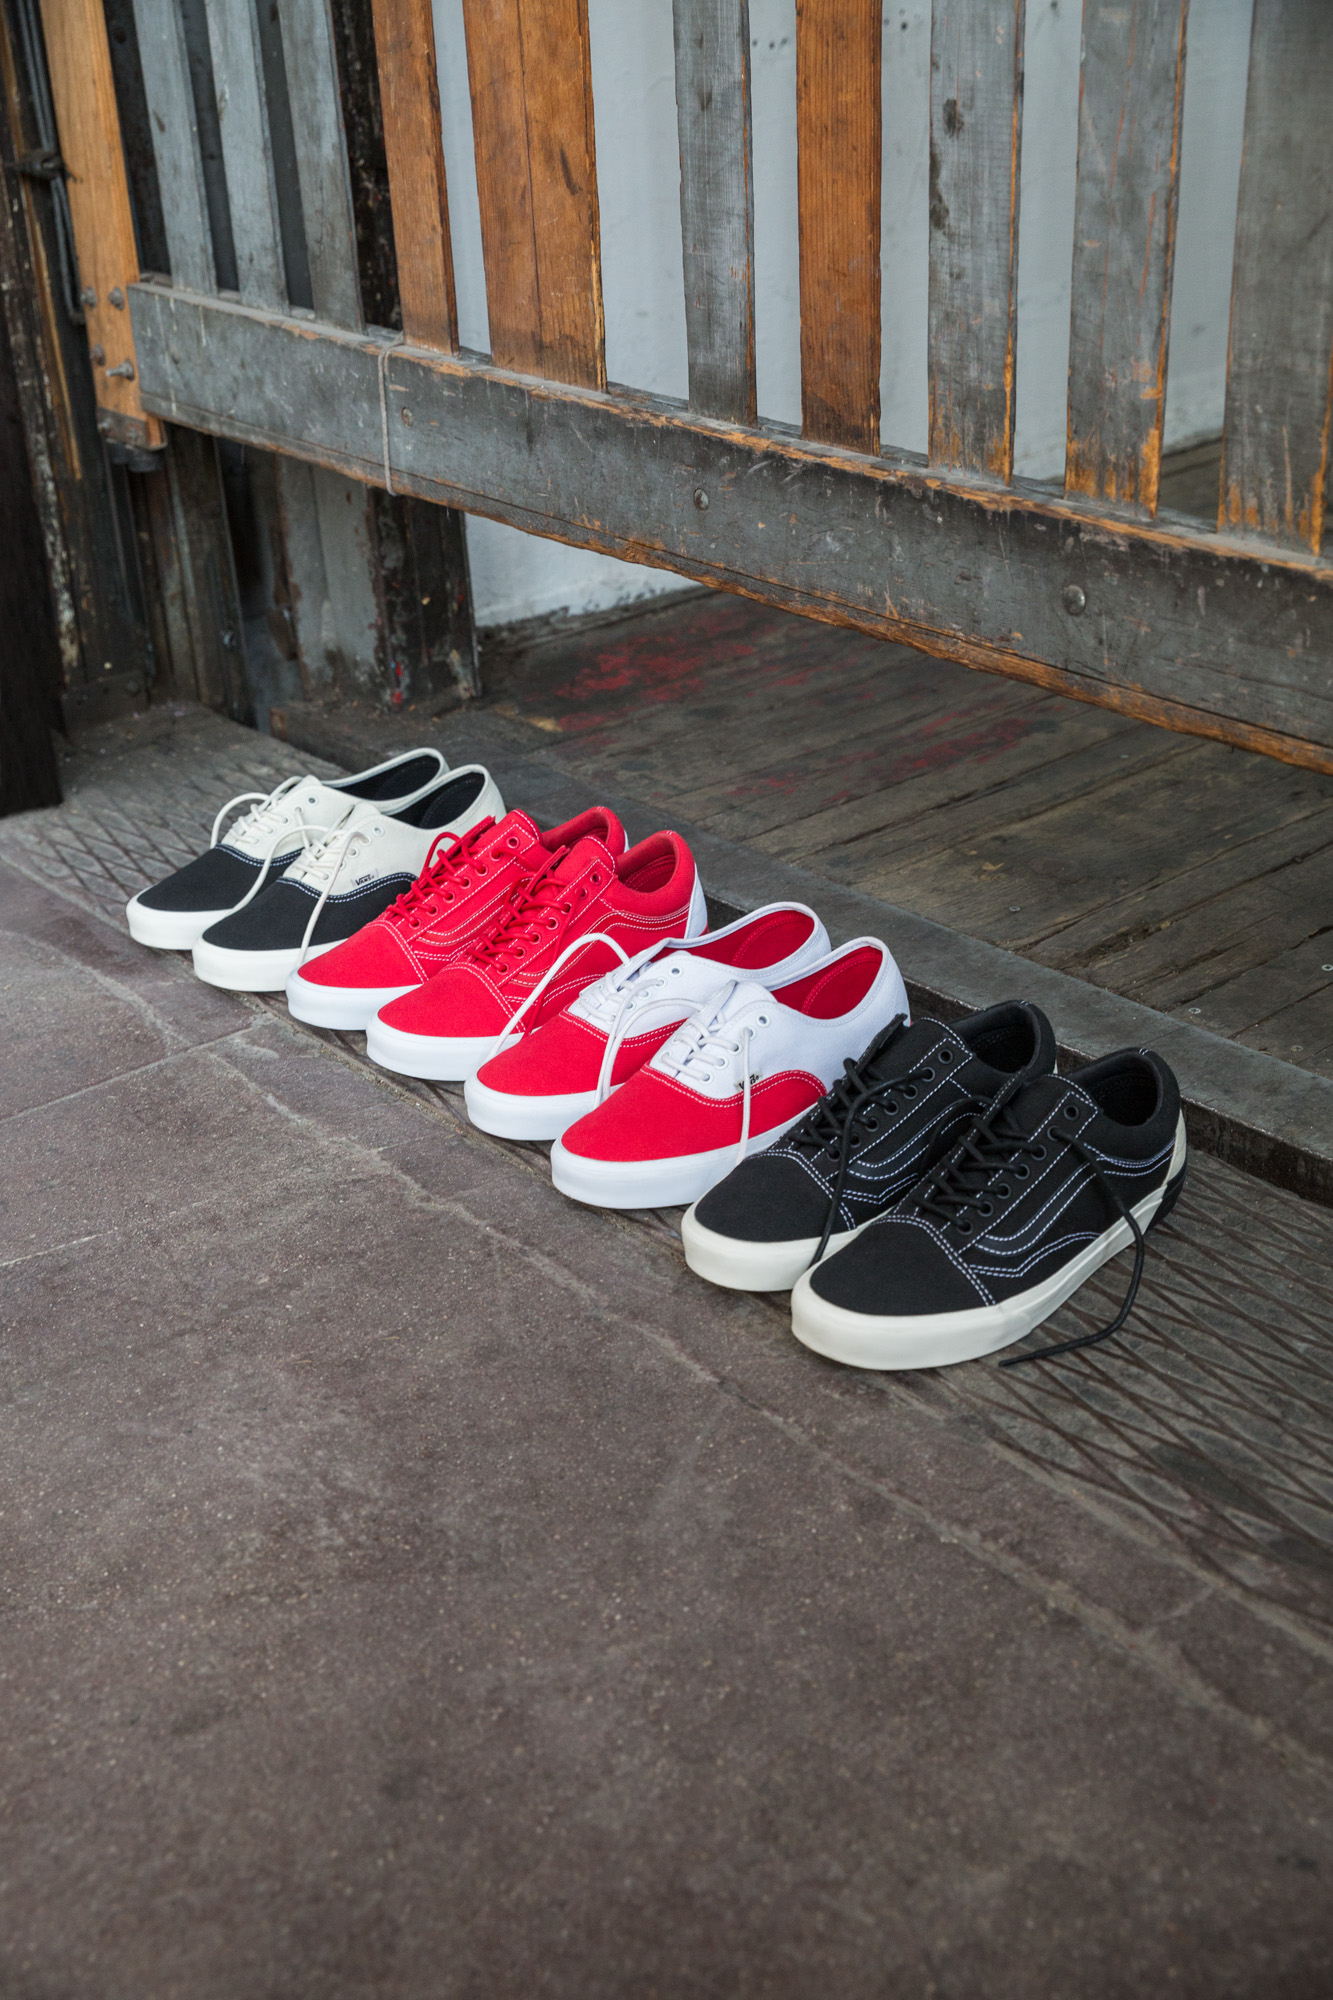 INTRODUCING THE CLASSICS BLOCKED PACK